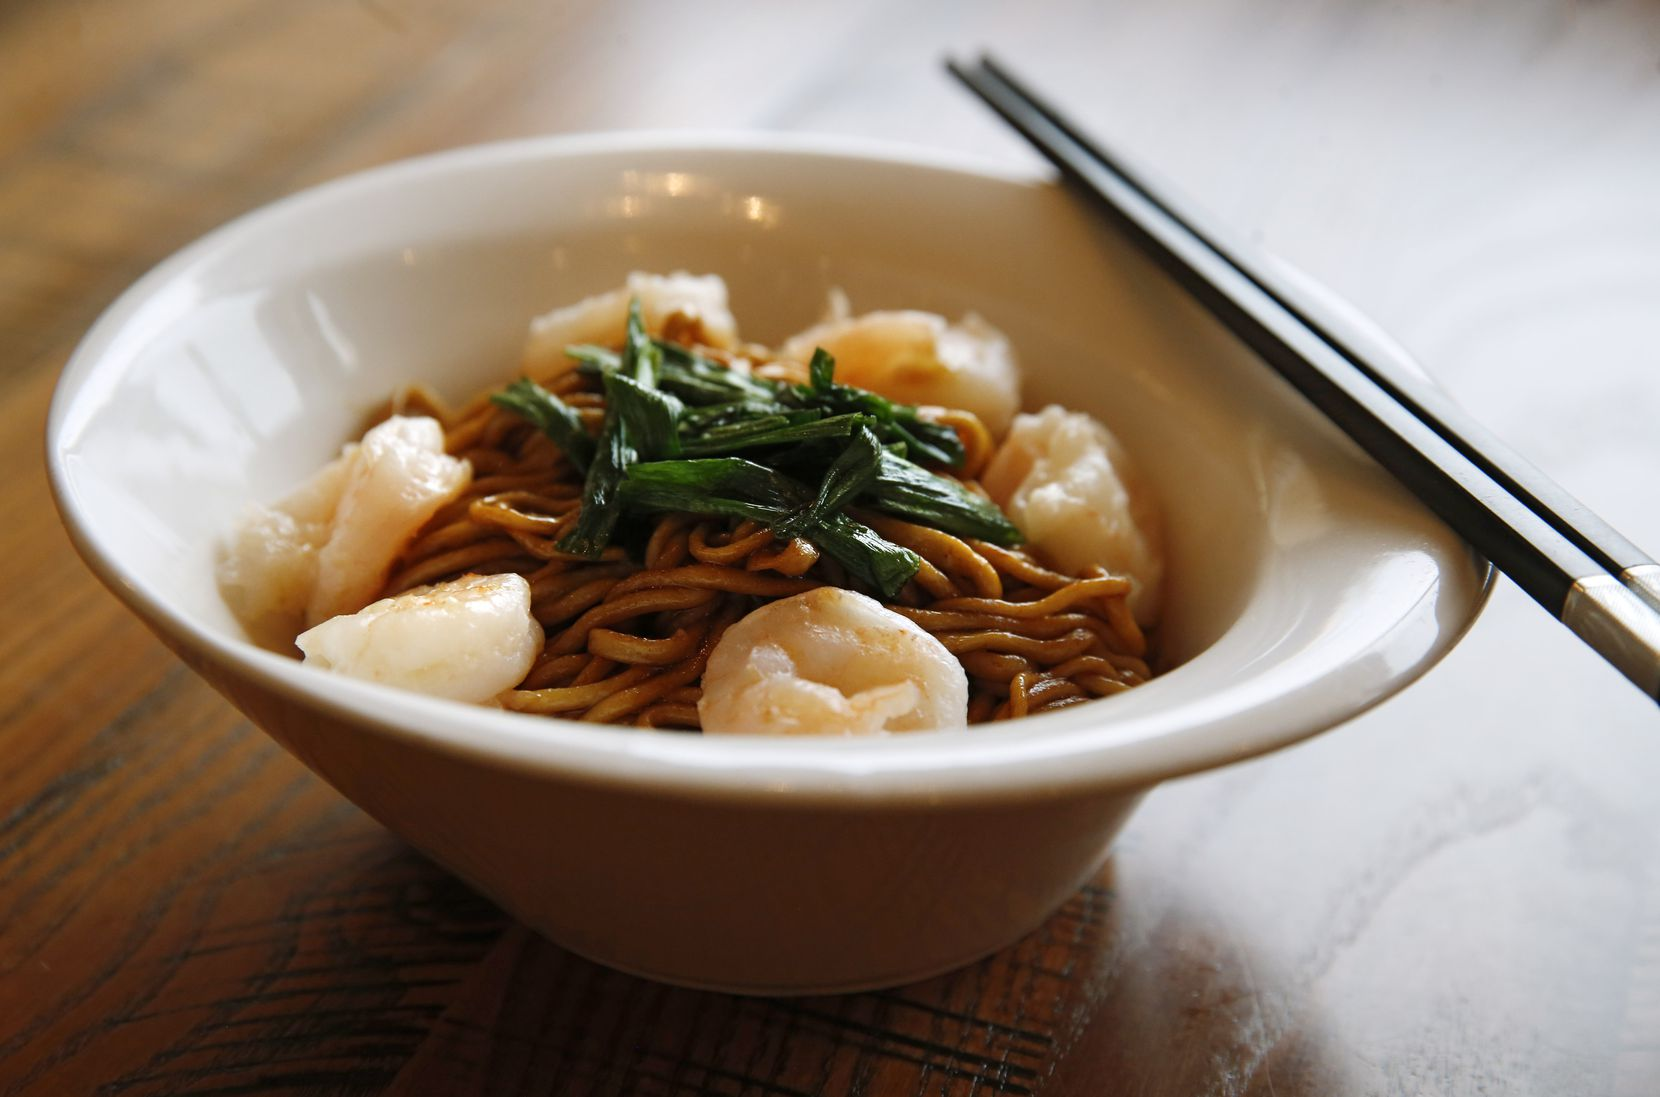 Hand-pulled noodles with shrimp, scallion and soy